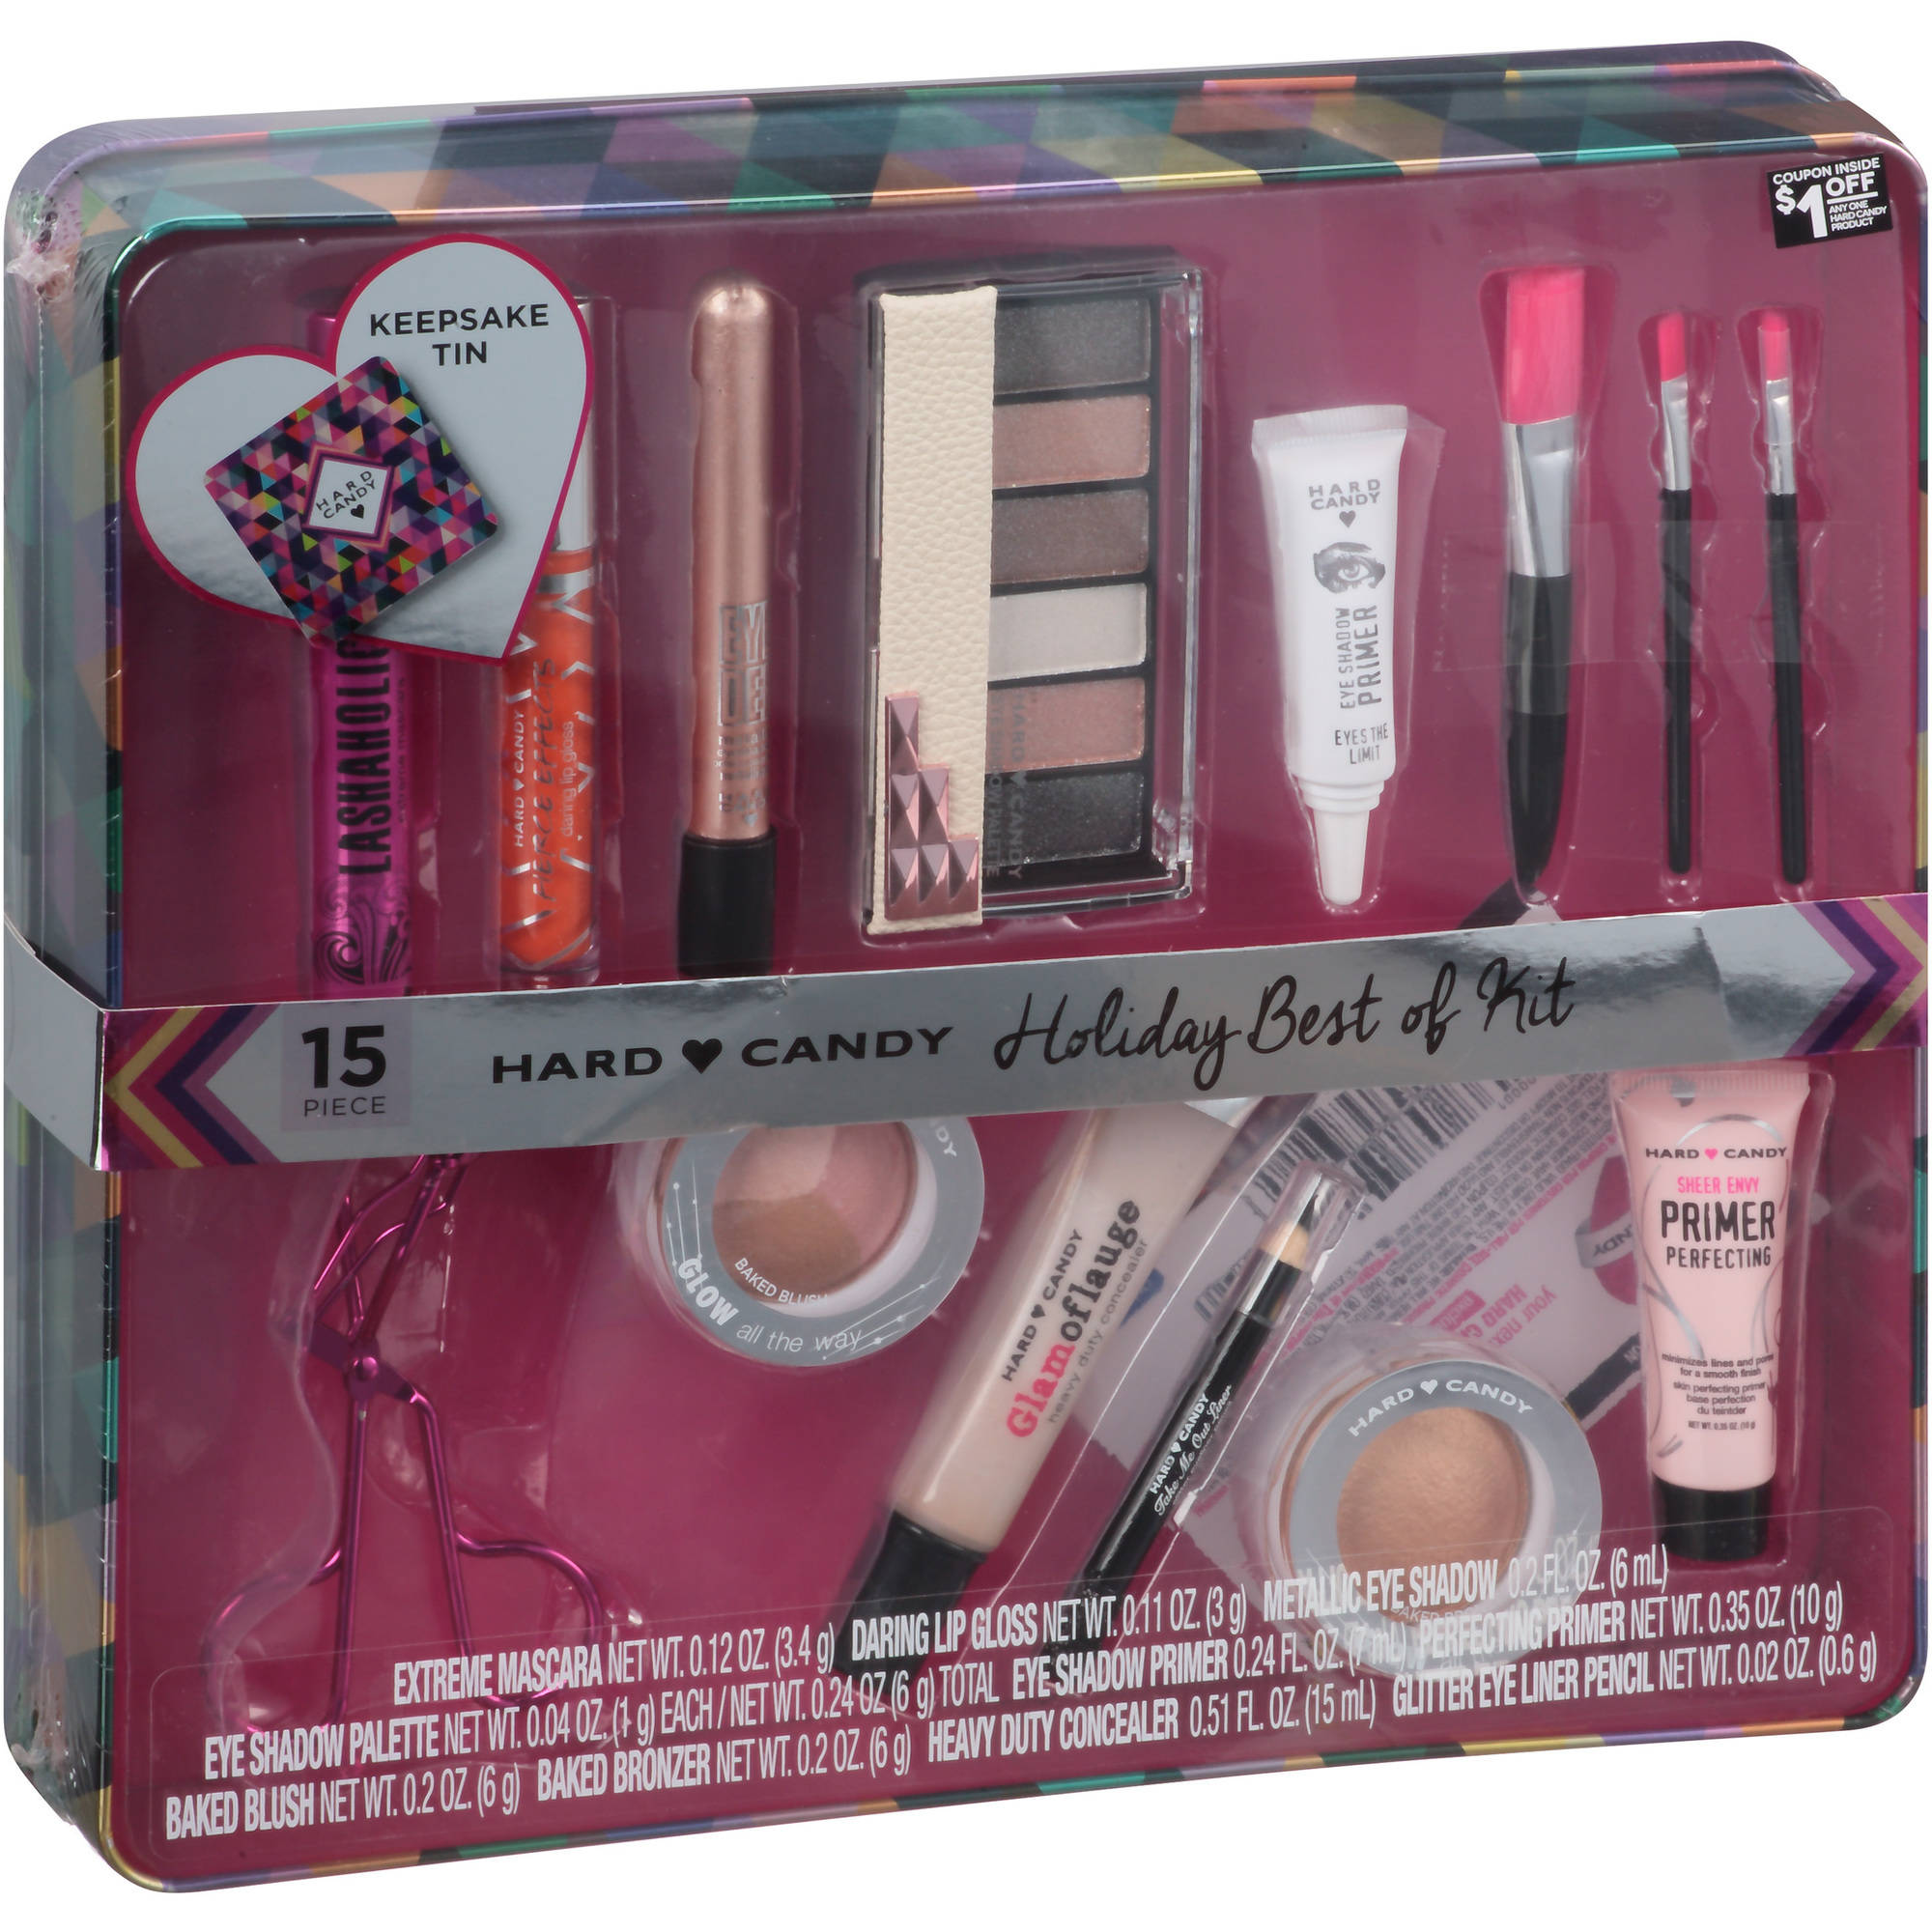 Hard Candy Holiday Best of Kit Gift Set, 15 pc